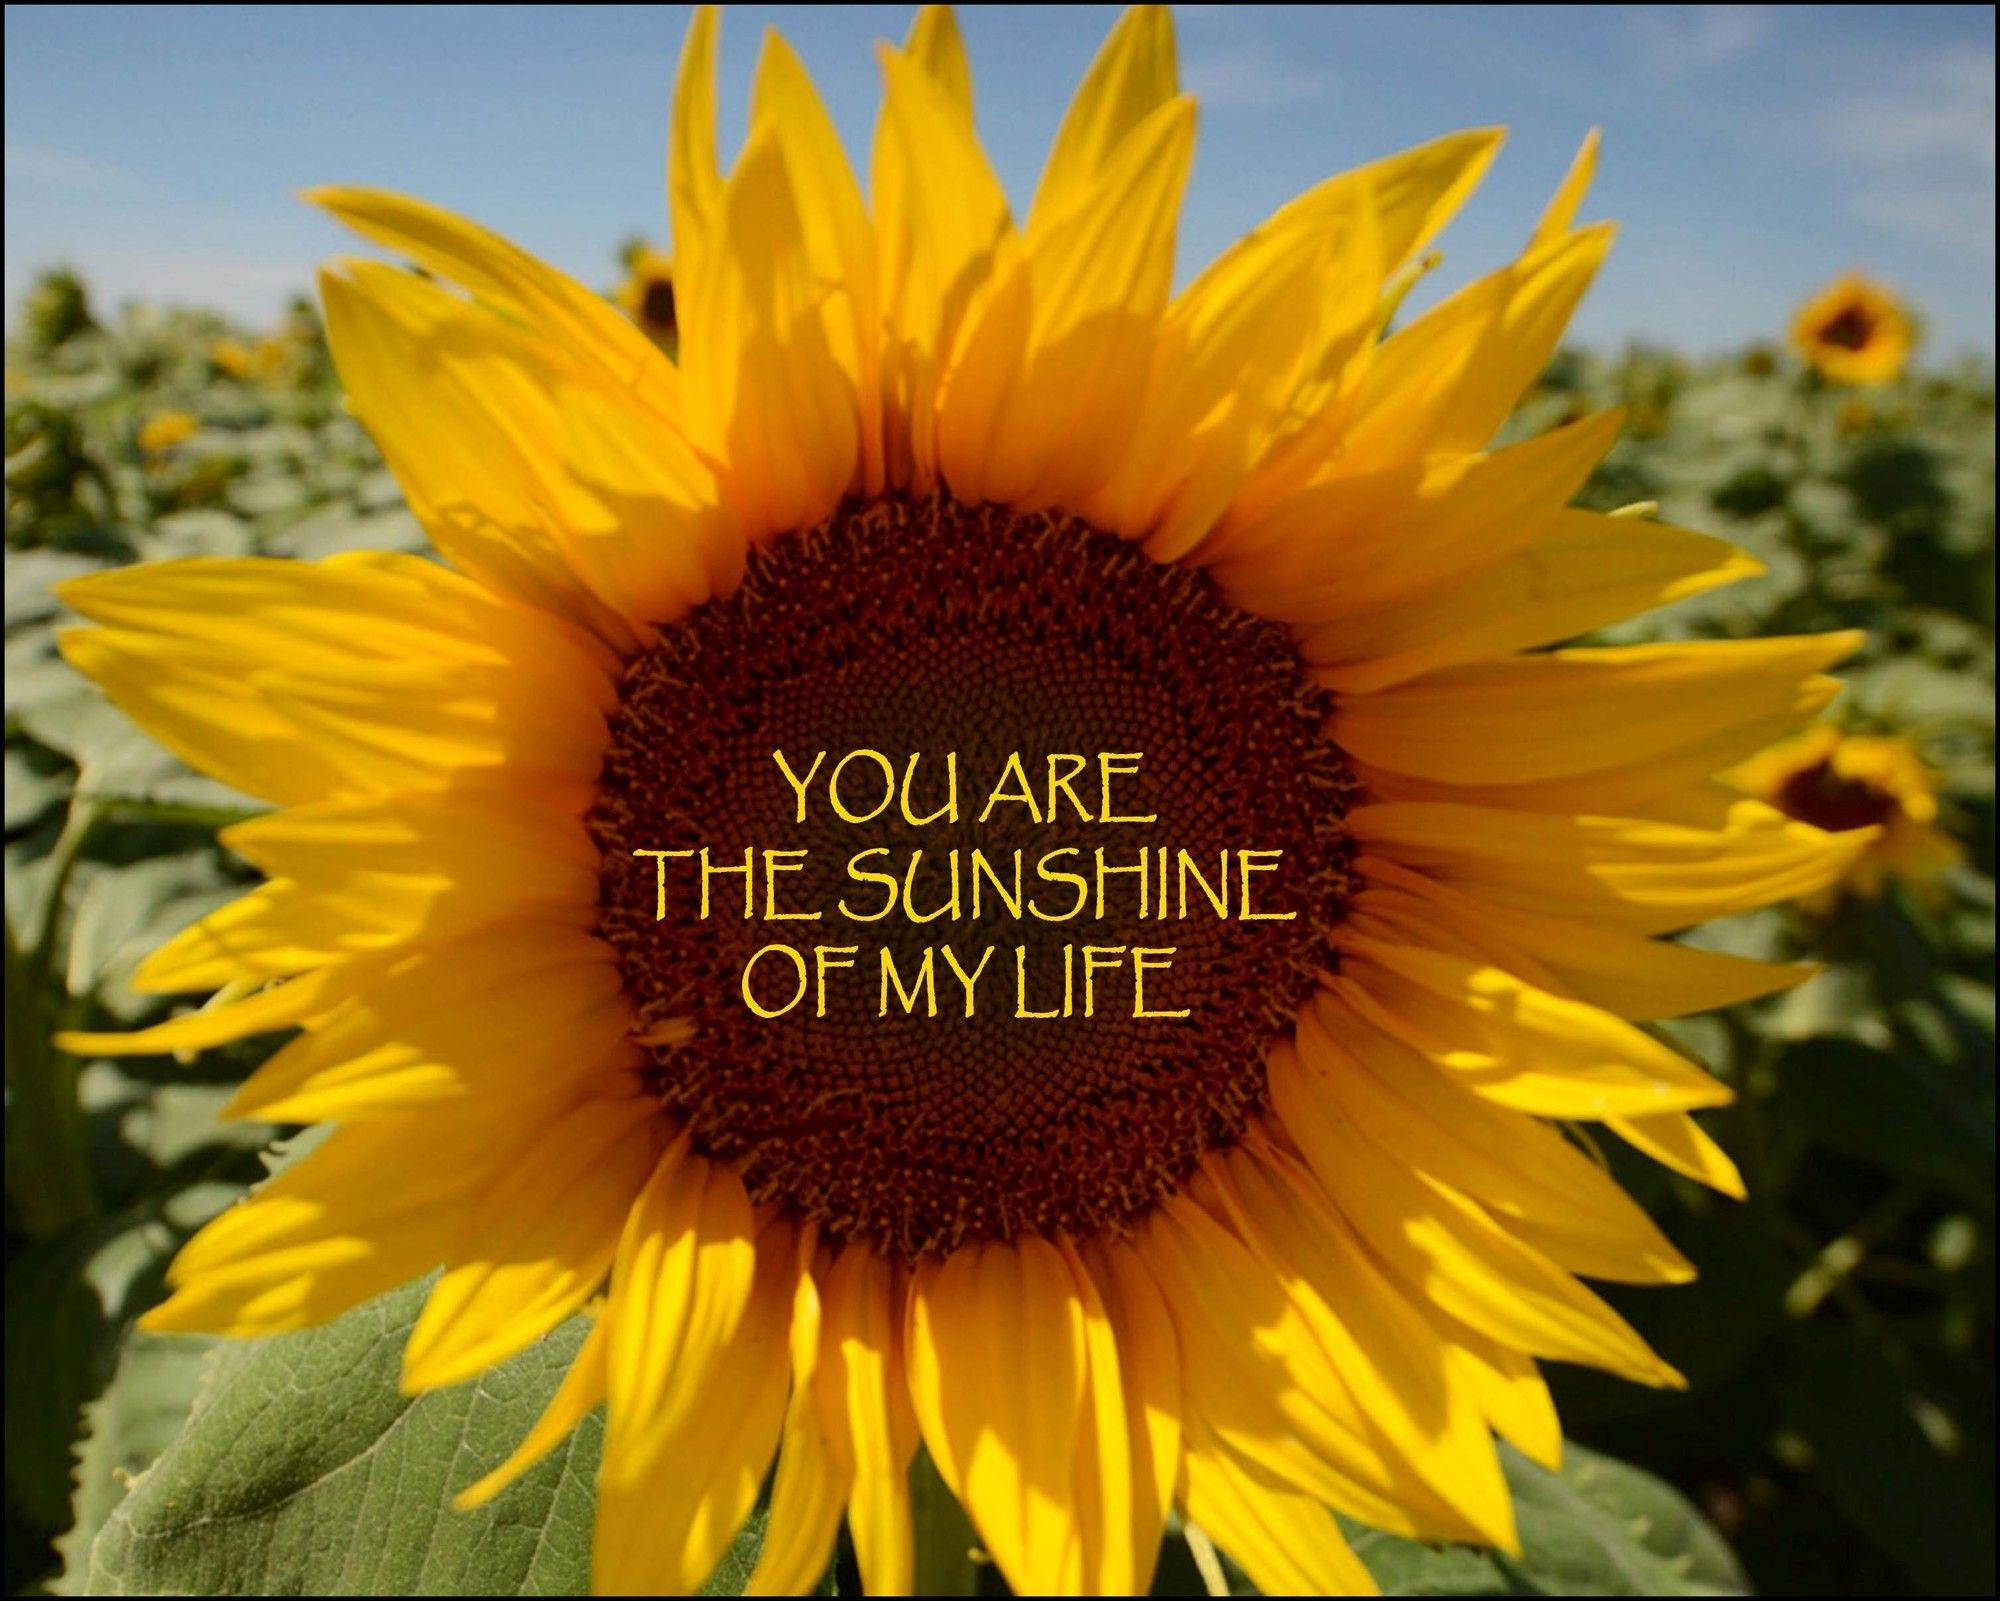 Life lines you are my sunshine textual art plaque more than words